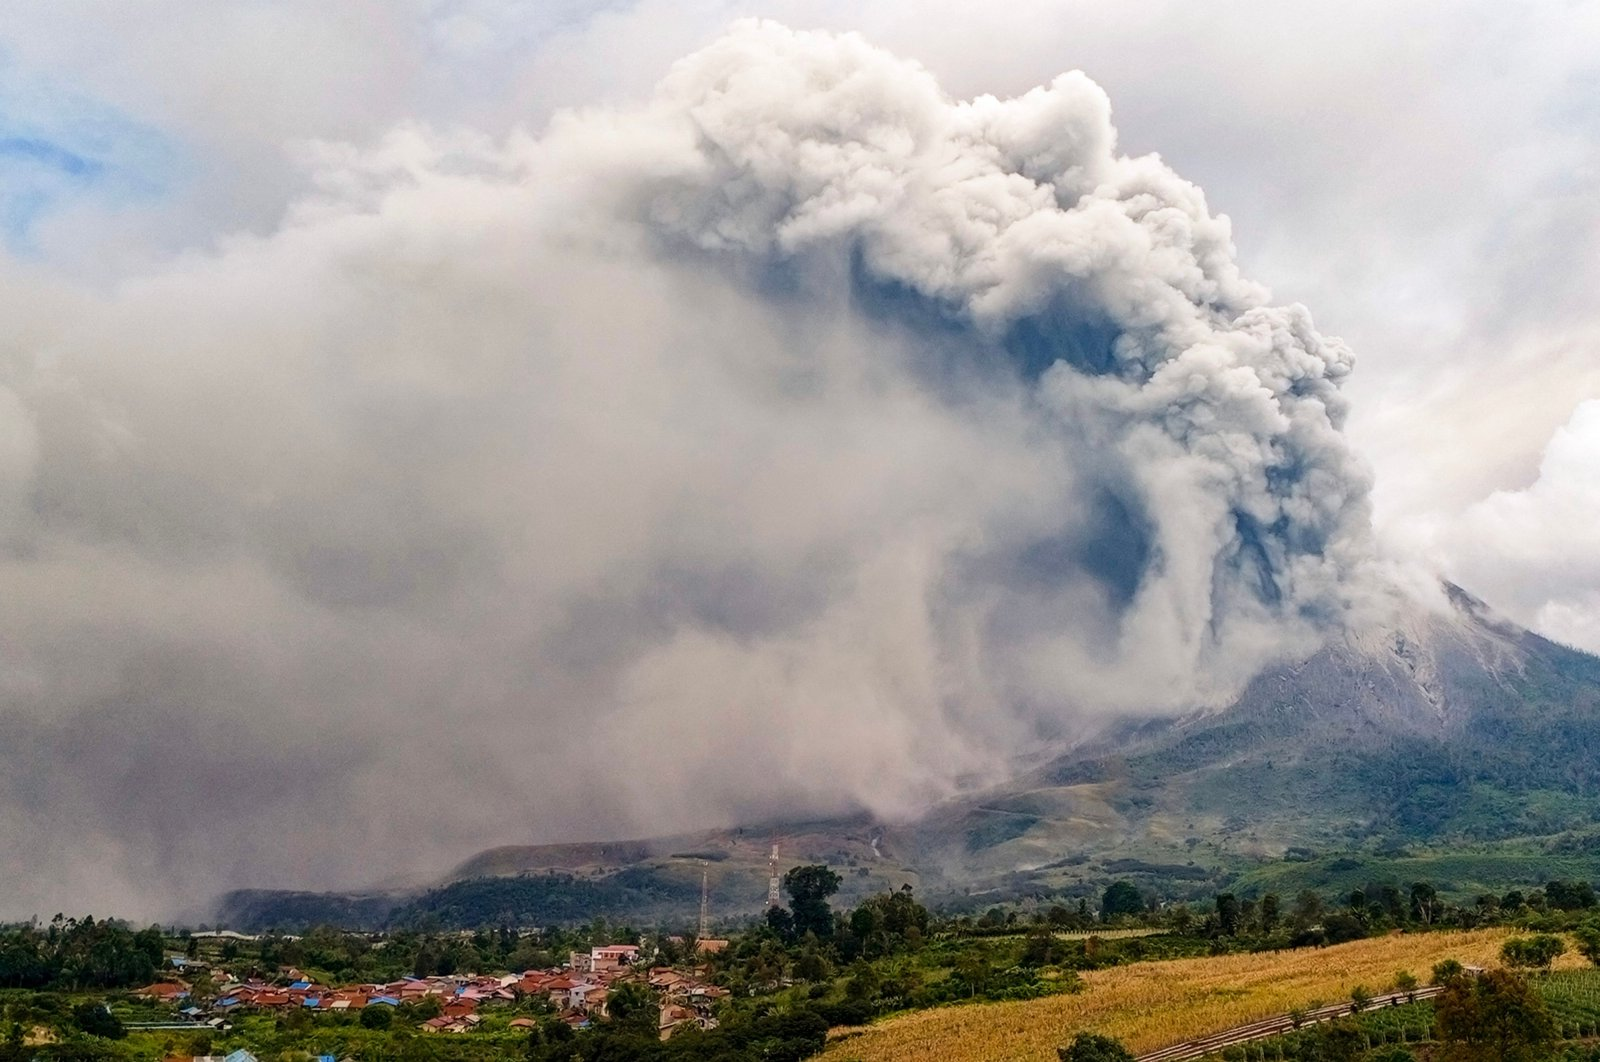 Mount Sinabung erupts, spewing a massive column of smoke and ash as seen from Karo, North Sumatra, Indonesia, July 28, 2021. (AFP Photo)